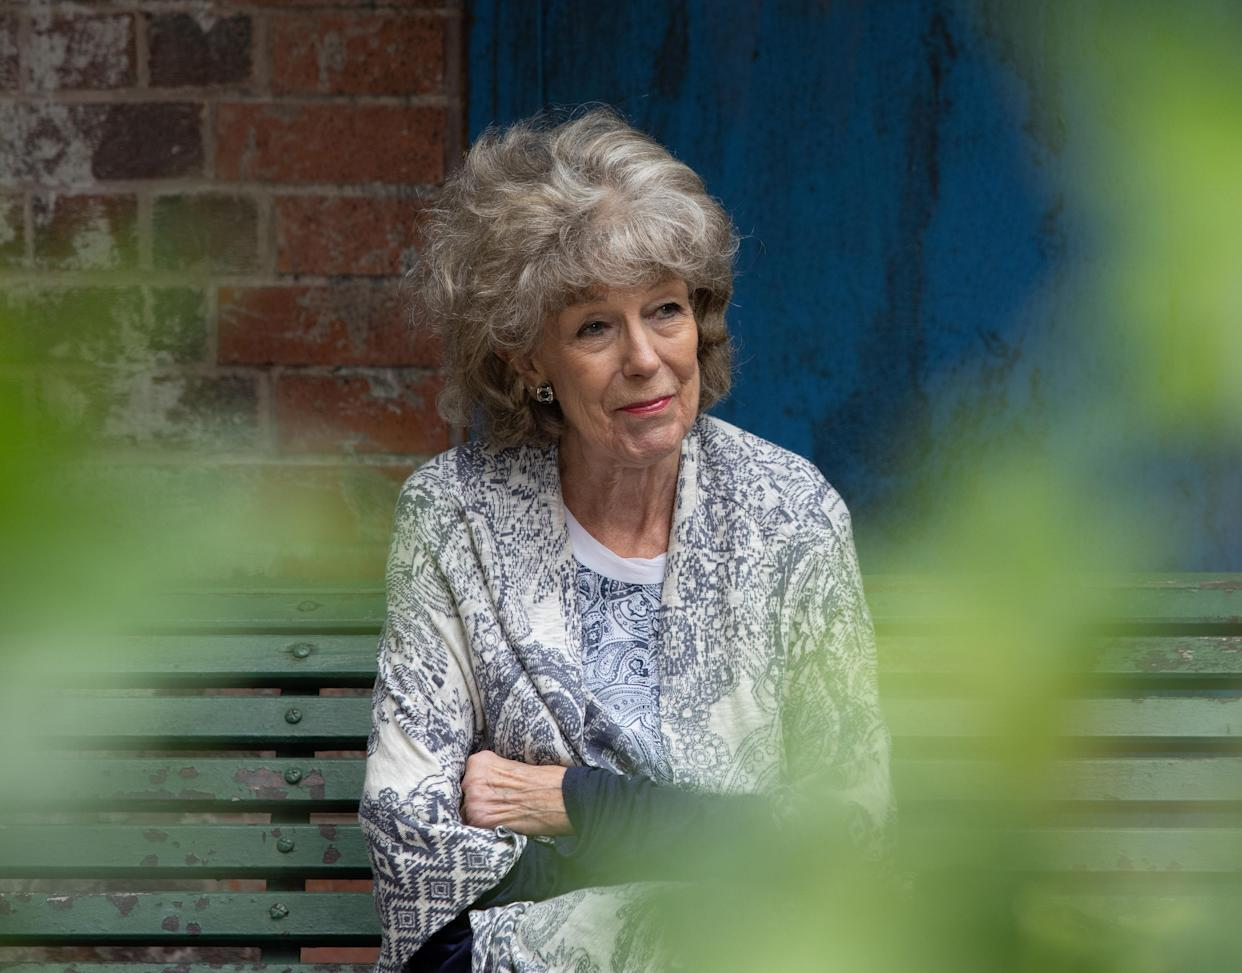 FROM ITV  STRICT EMBARGO - No Use Before  Tuesday 21st September  2021  Coronation Street - Ep 10440  Monday 27th September 2021 - 1st Ep   Explaining her feelings of redundancy to Shona Platt [JULIA GOULDING], Audrey Roberts [SUE NICHOLS] is touched by her words of comfort.   Picture contact David.crook@itv.com  Photographer - Mark Bruce   This photograph is (C) ITV Plc and can only be reproduced for editorial purposes directly in connection with the programme or event mentioned above, or ITV plc. Once made available by ITV plc Picture Desk, this photograph can be reproduced once only up until the transmission [TX] date and no reproduction fee will be charged. Any subsequent usage may incur a fee. This photograph must not be manipulated [excluding basic cropping] in a manner which alters the visual appearance of the person photographed deemed detrimental or inappropriate by ITV plc Picture Desk. This photograph must not be syndicated to any other company, publication or website, or permanently archived, without the express written permission of ITV Picture Desk. Full Terms and conditions are available on  www.itv.com/presscentre/itvpictures/terms